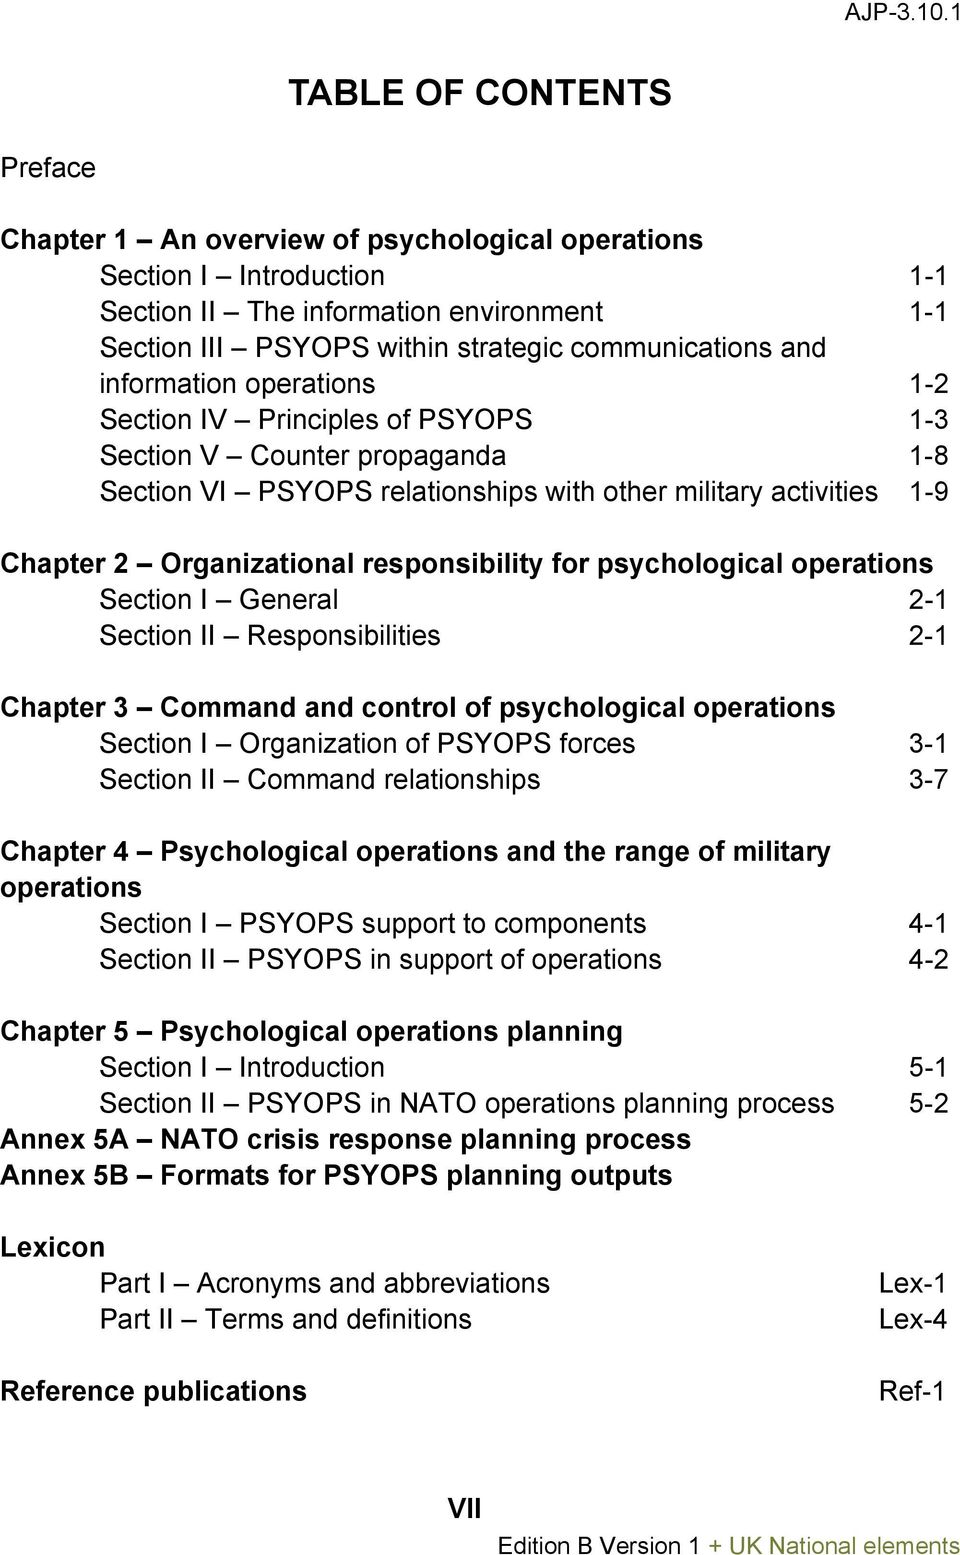 responsibility for psychological operations Section I General 2-1 Section II Responsibilities 2-1 Chapter 3 Command and control of psychological operations Section I Organization of PSYOPS forces 3-1